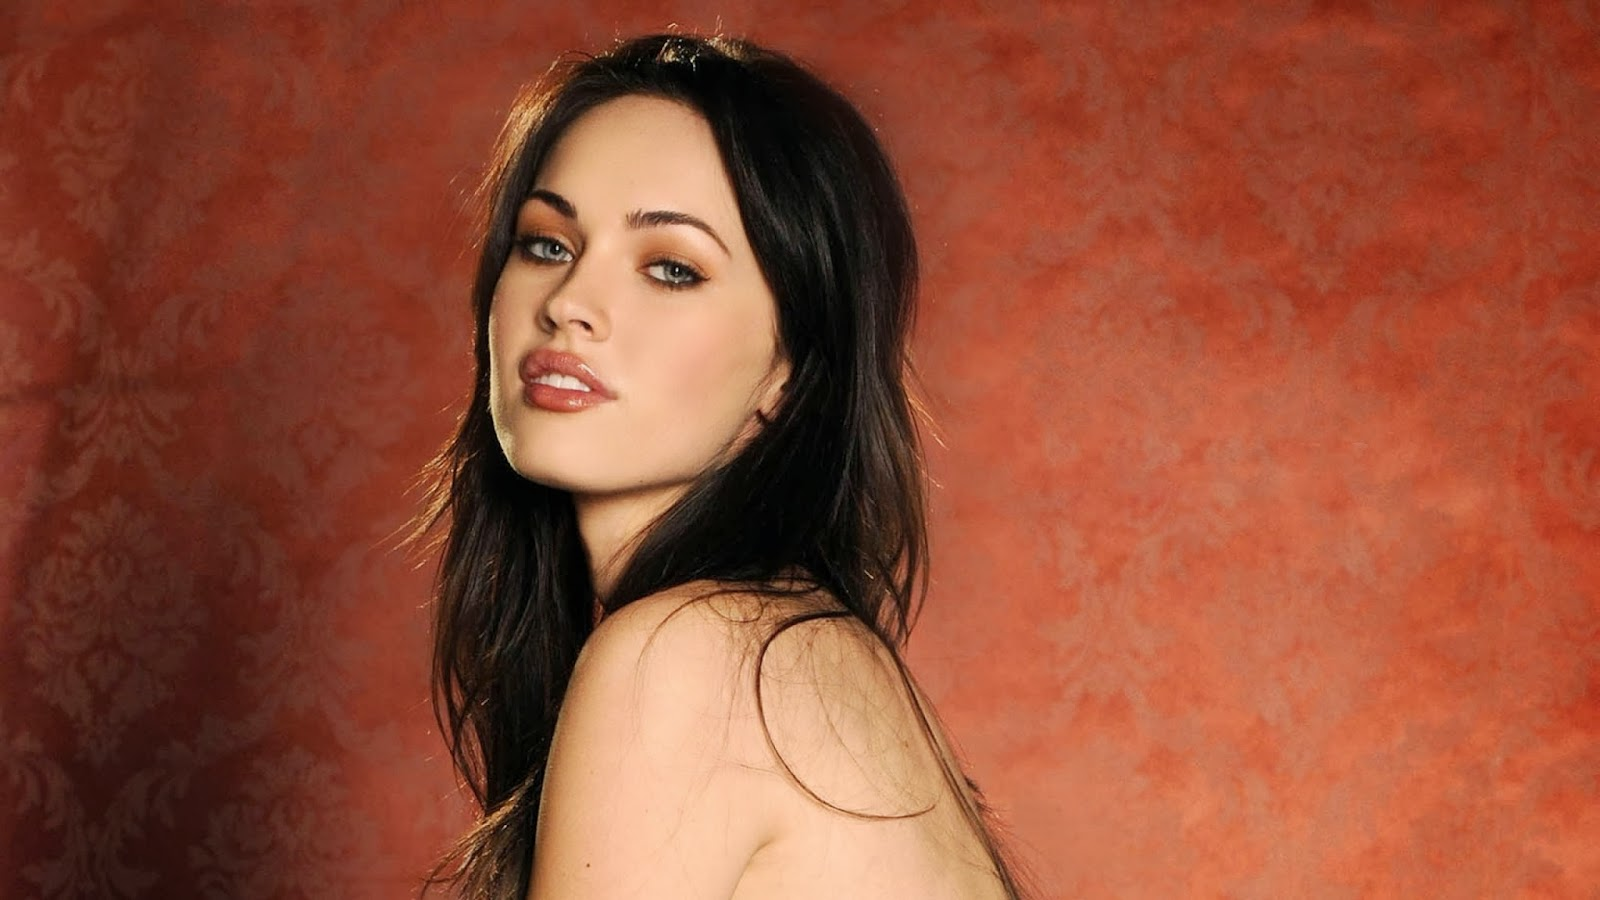 celebrity hd wallpapers american actress megan fox sexy hd wallpapers